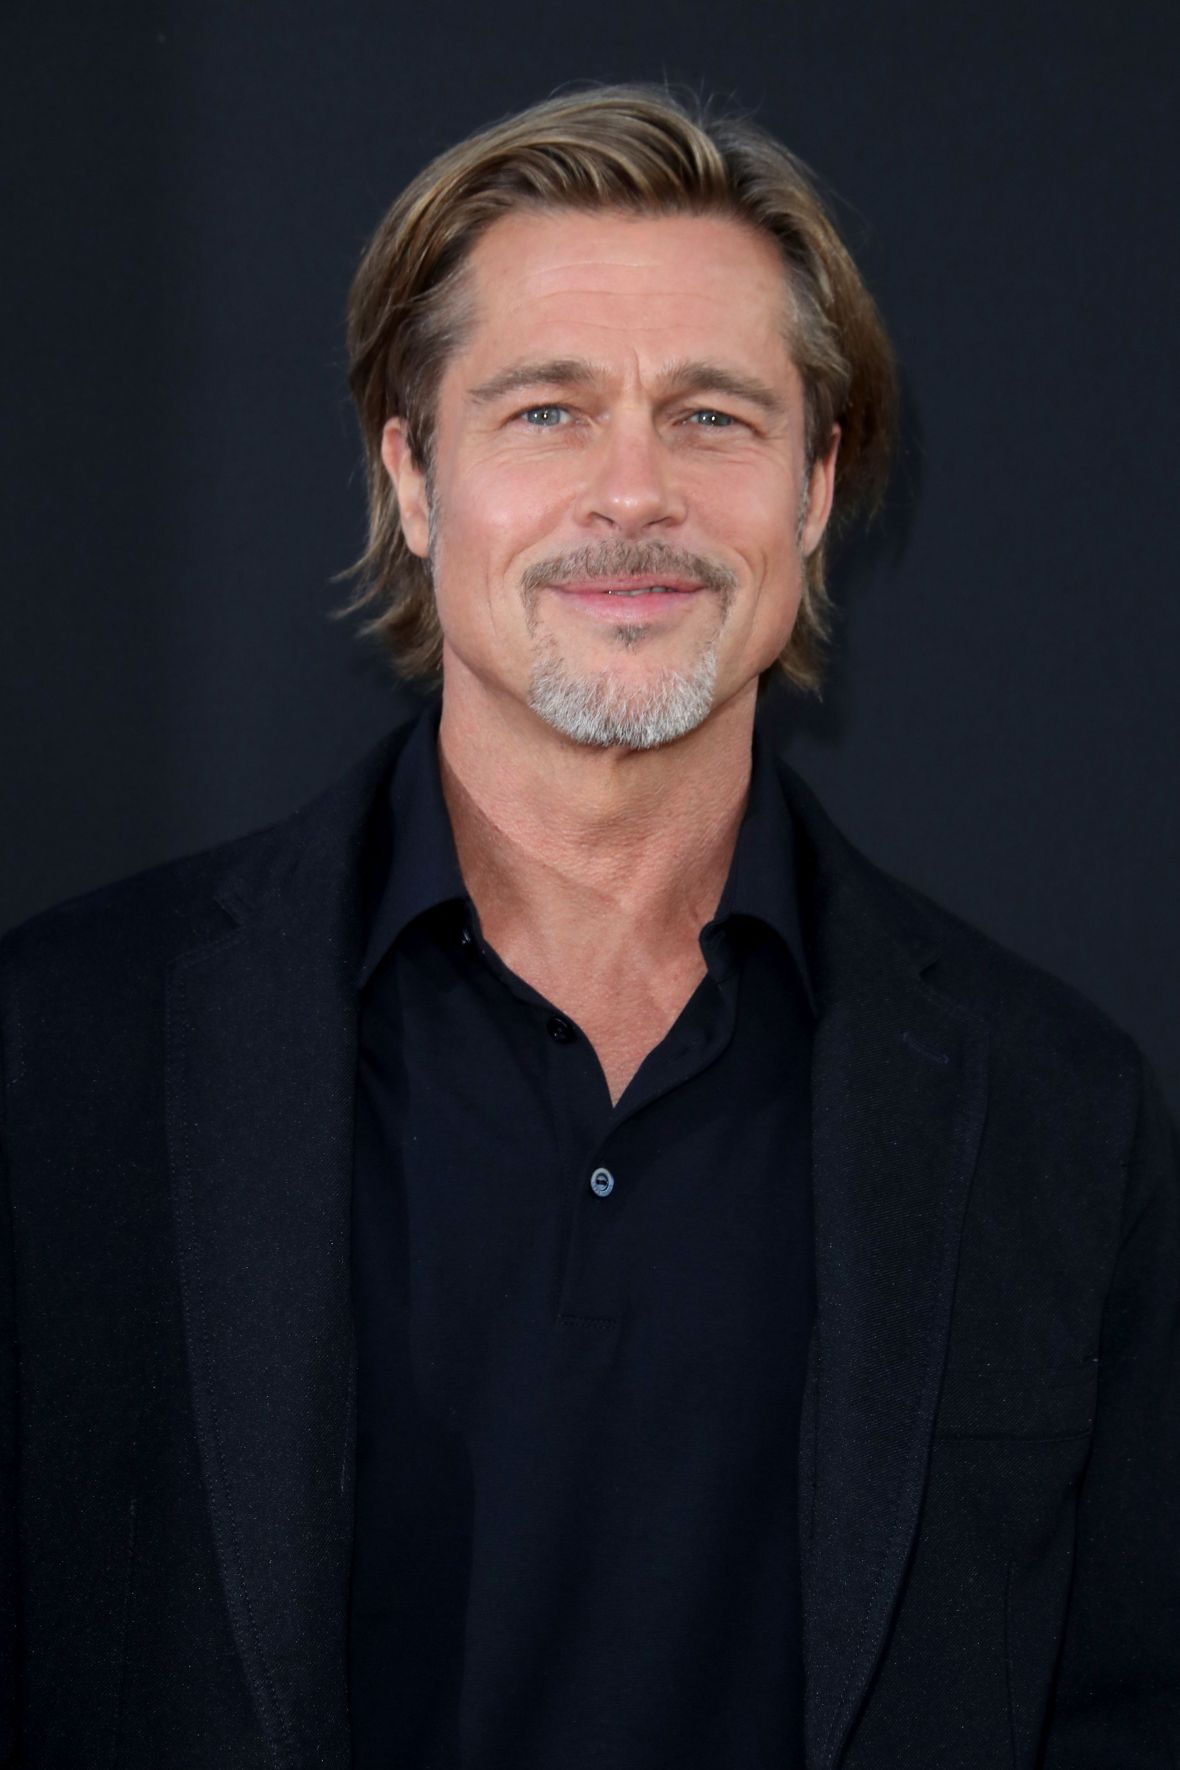 Brad Pitt at the Premiere of 'Ad Astra'